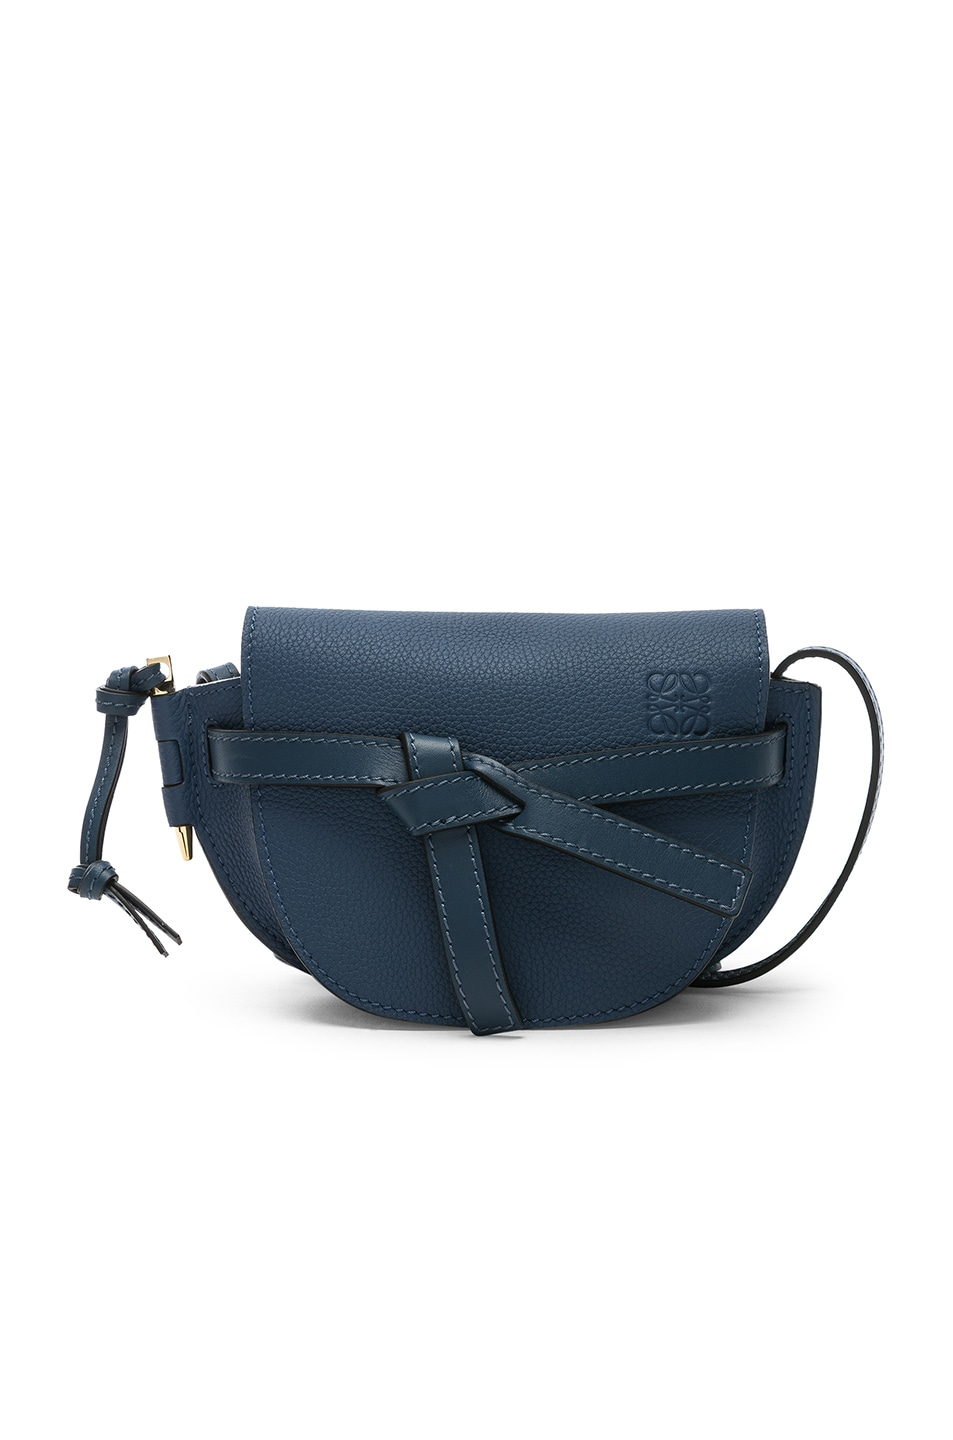 Image 1 of Loewe Gate Mini Bag in Varsity Blue & Indigo